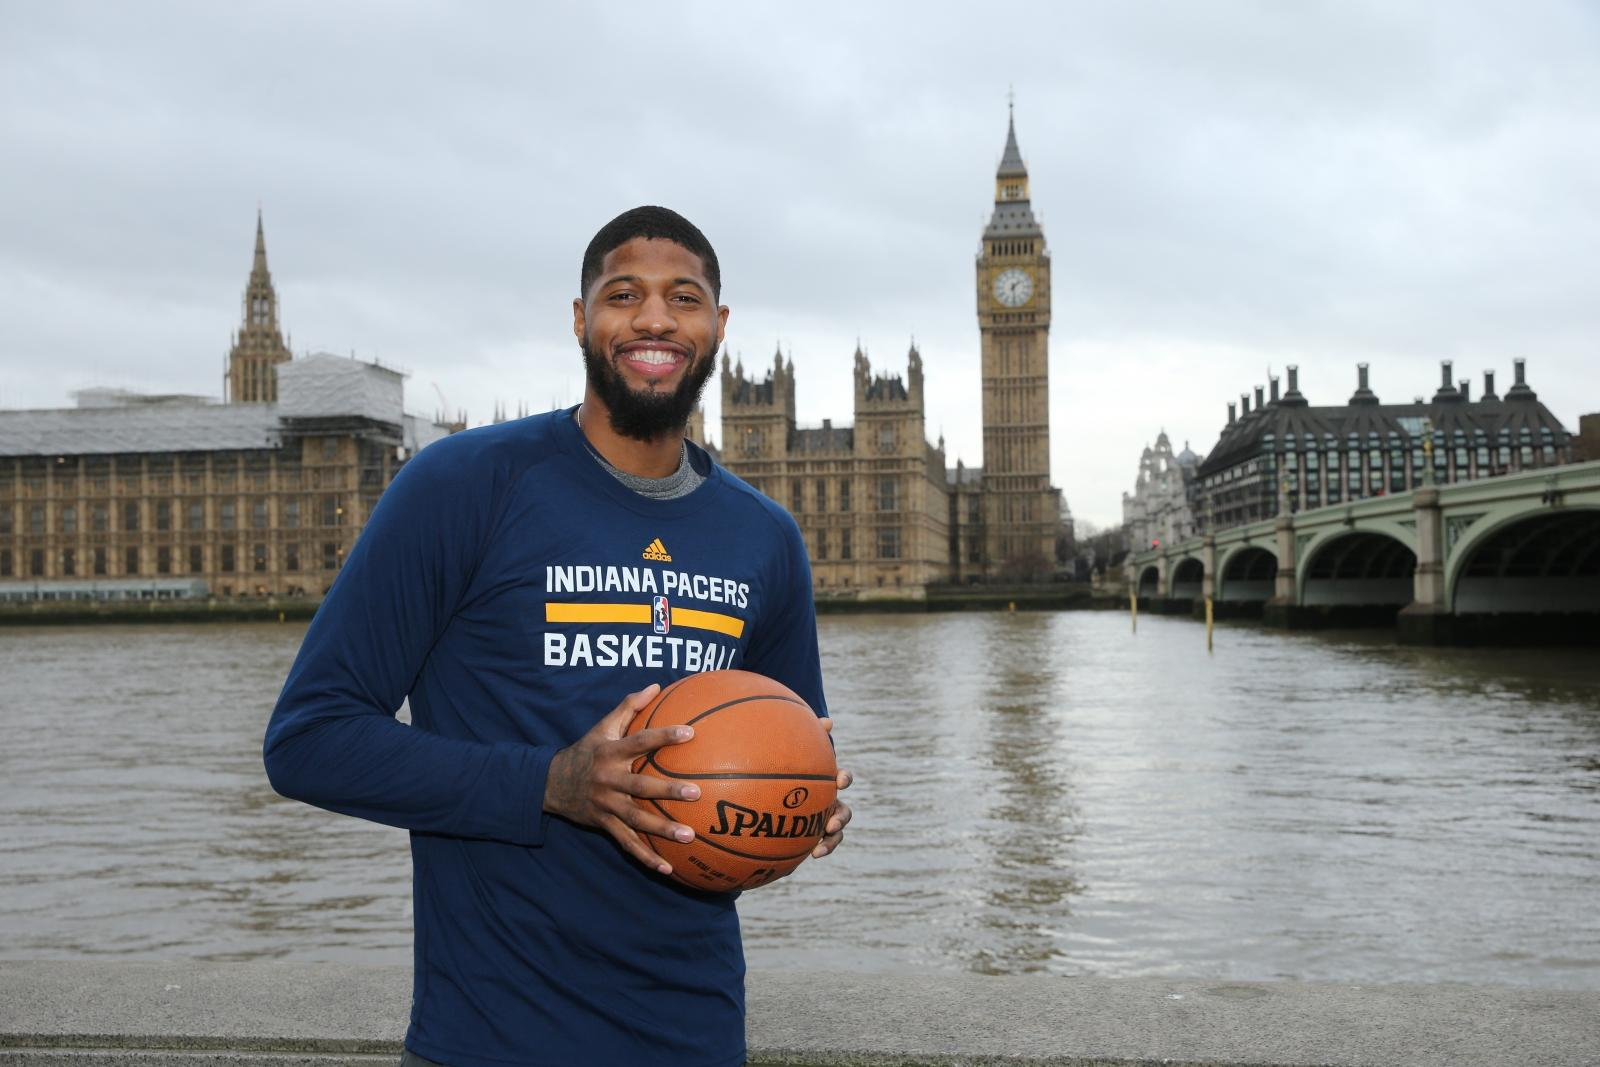 Indiana Pacers and Denver Nuggets collide in seventh NBA Global Games London clash